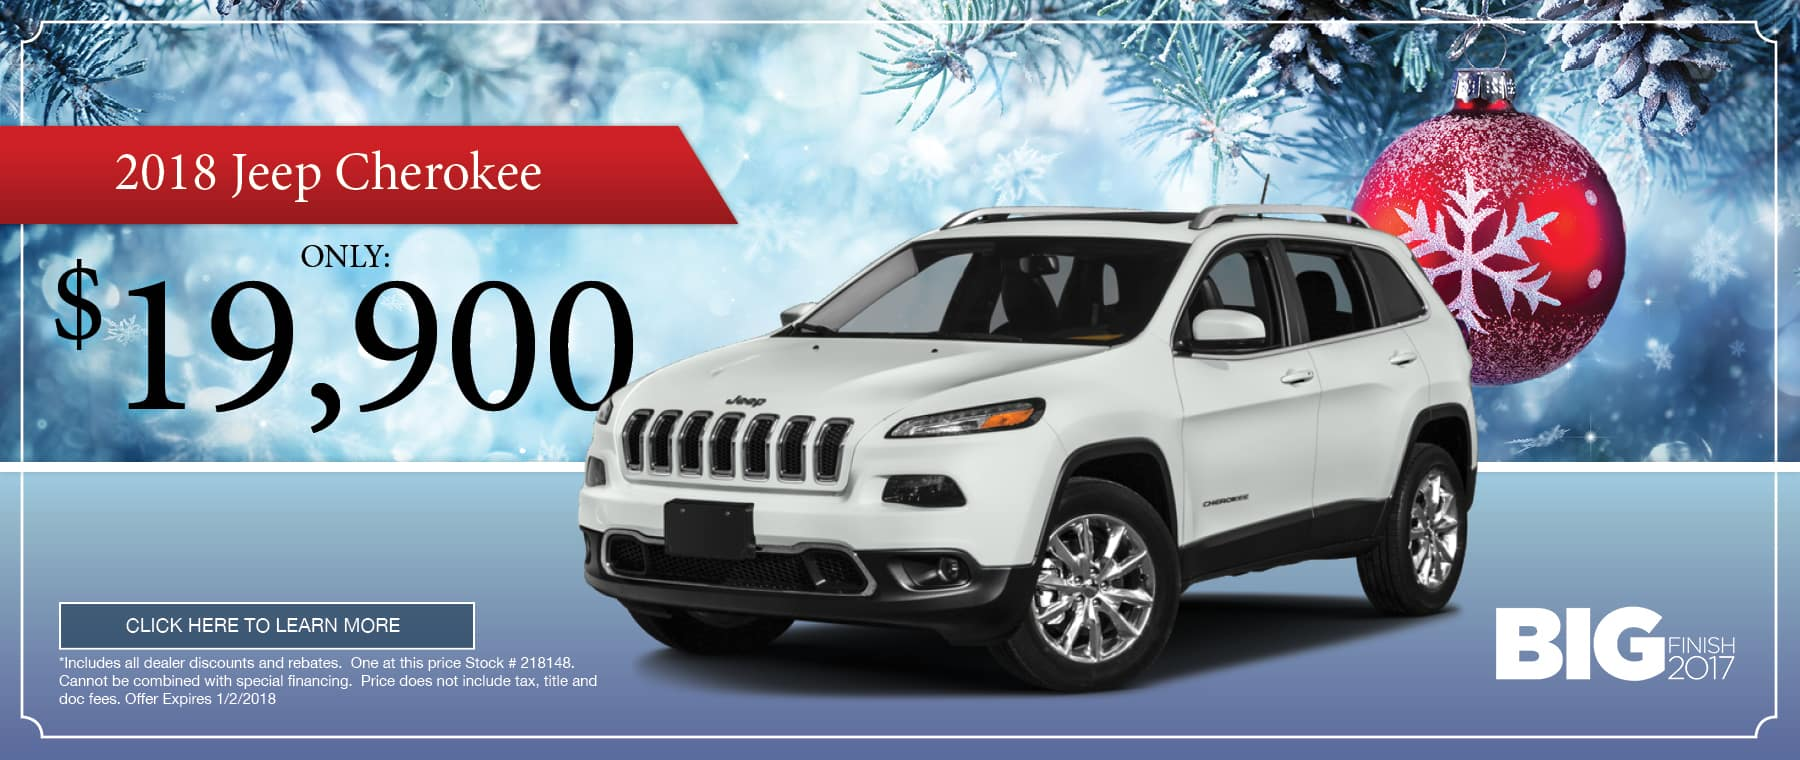 2018 Jeep Cherokee Special in Thomson, GA